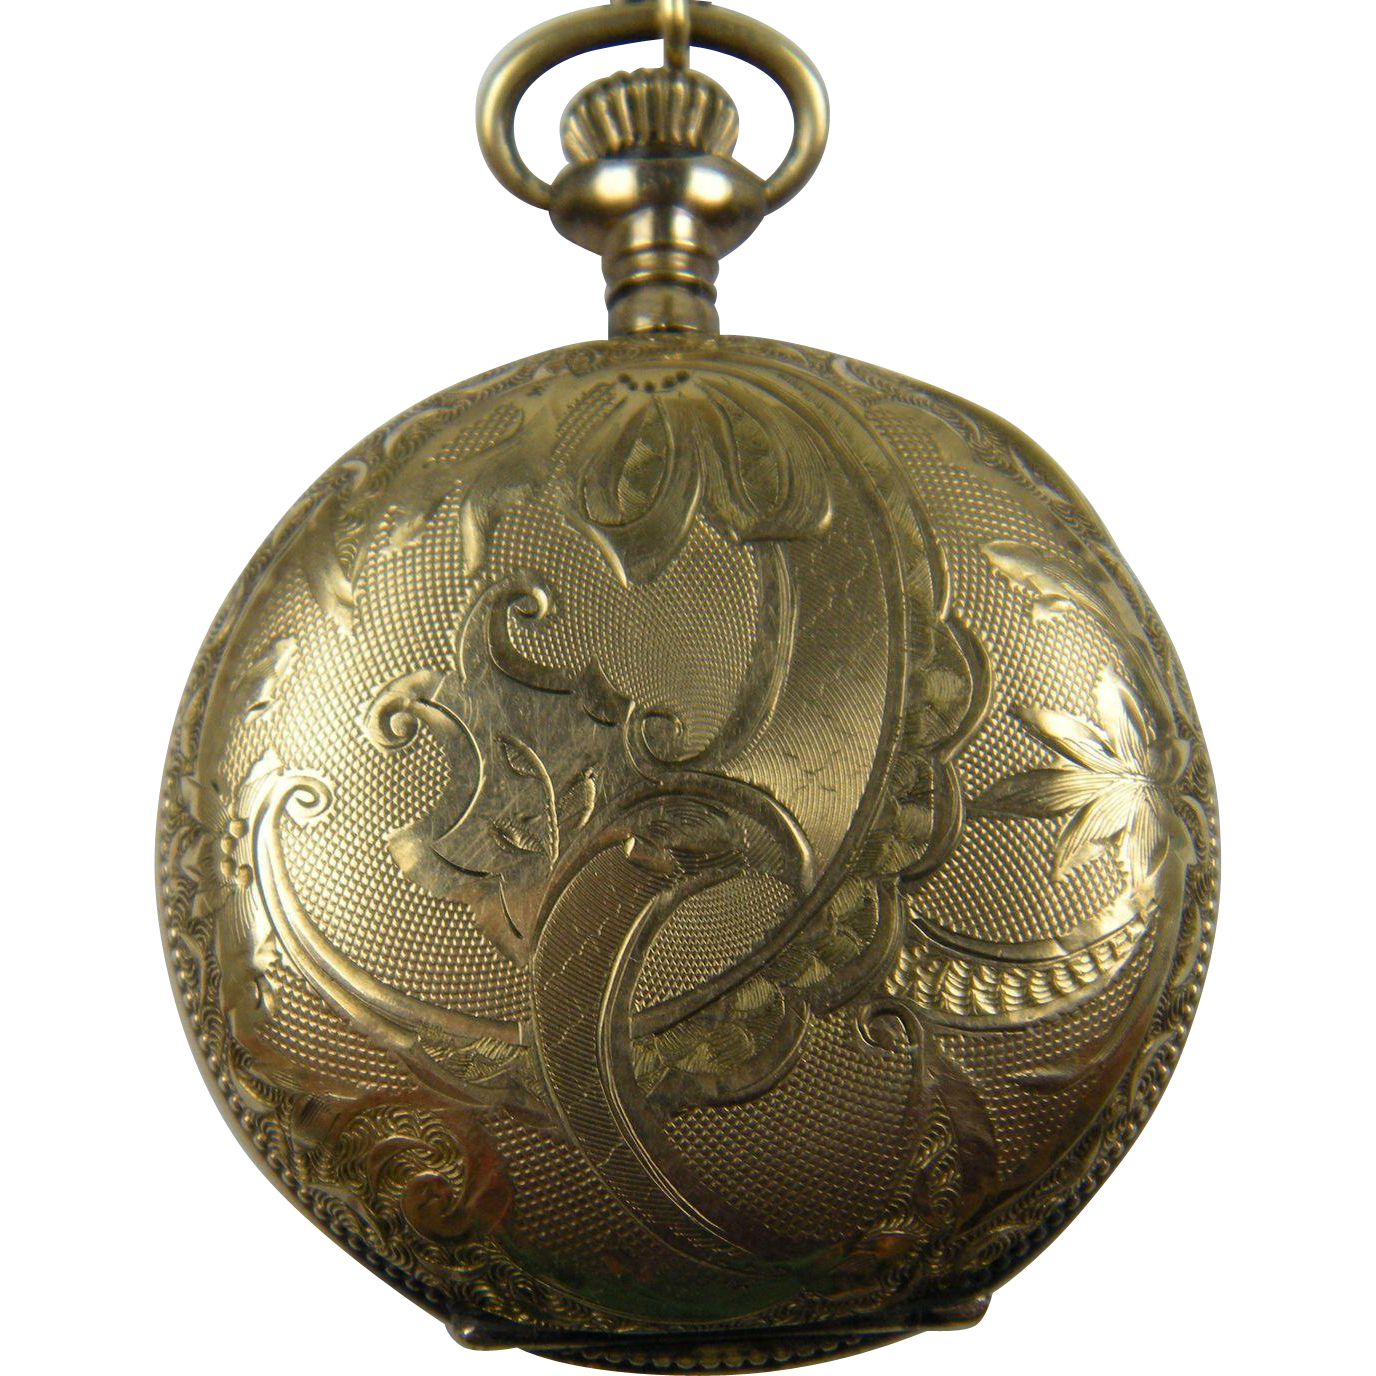 Engraved RODE Pocket Watch with Chain